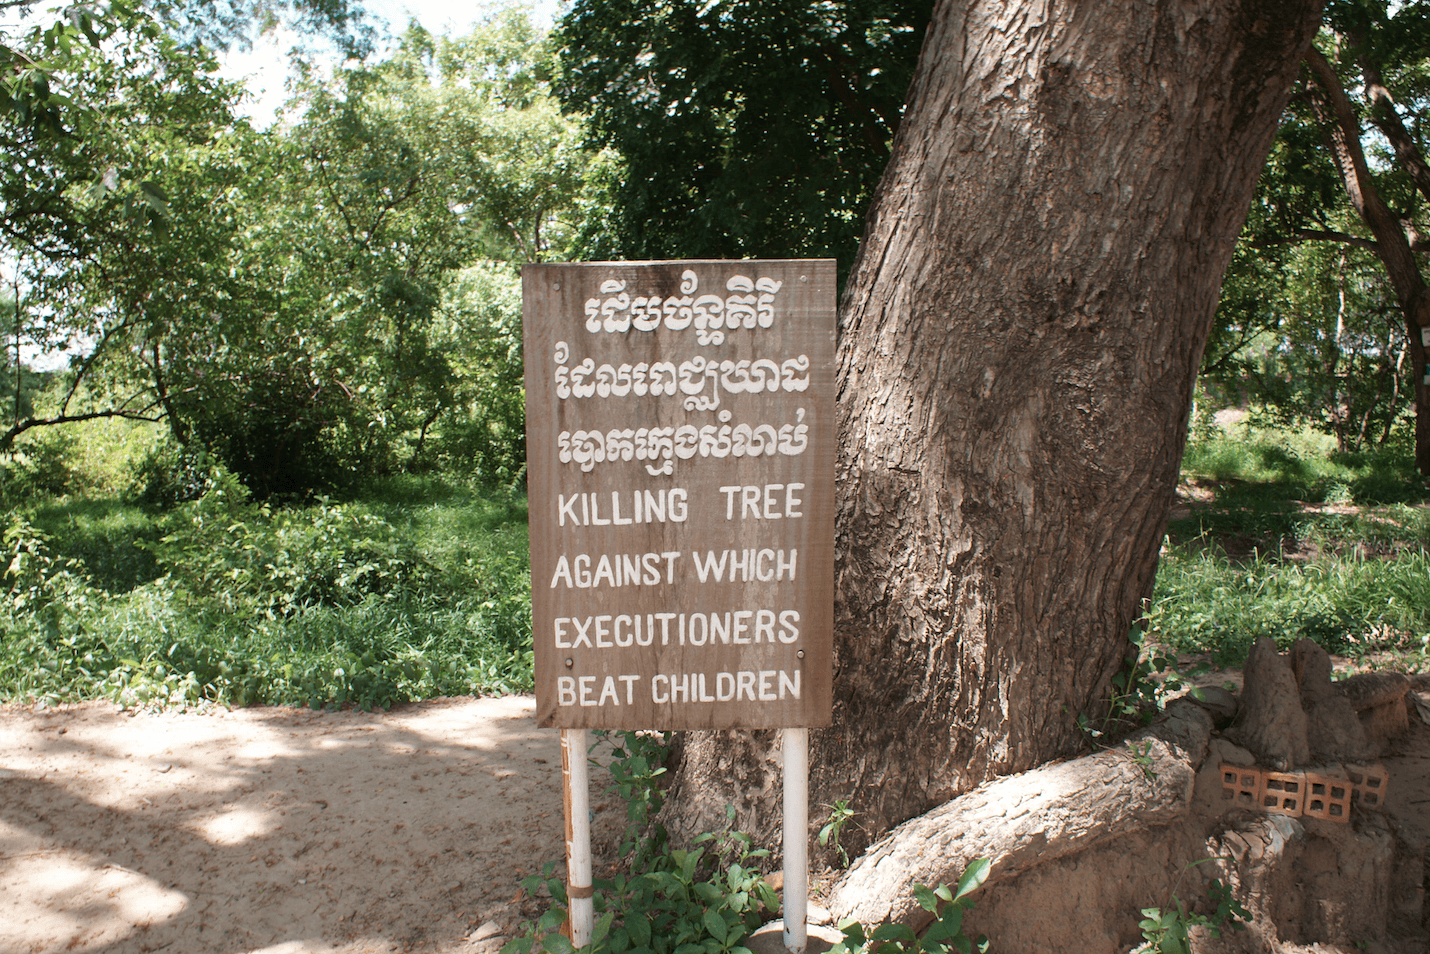 Killing Tree at Choeung Ek, or The Killing Fields, the site of a former orchard and mass grave of victims of the Khmer Rouge, 17 km south of Phnom Penh. Photo by Julie Thi Underhill, 2010.